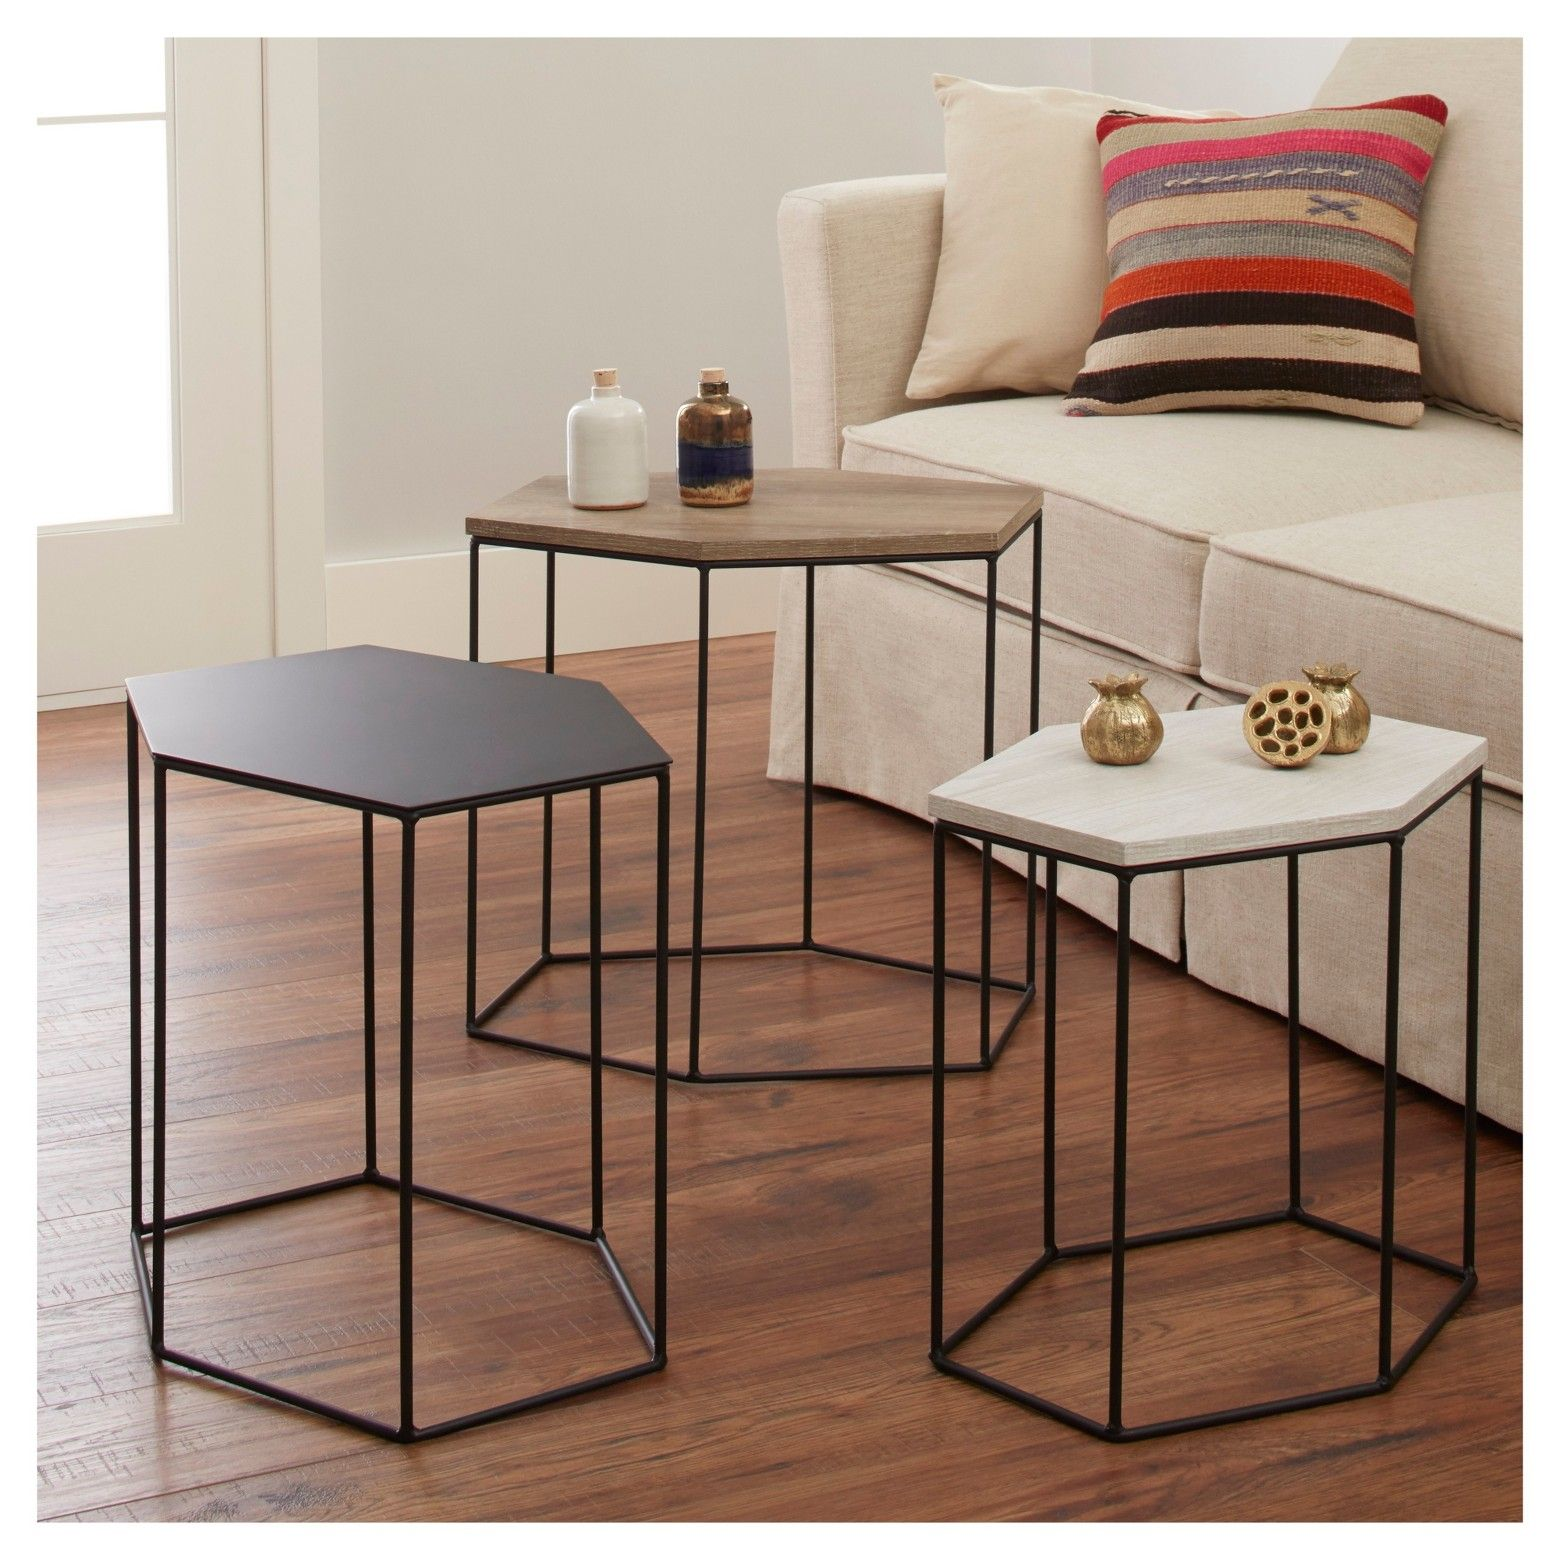 revamp your home decor with the whitney hexagonal accent table set hexagon target this occasional comes three coordinating pieces designed chair side tables living room placemat